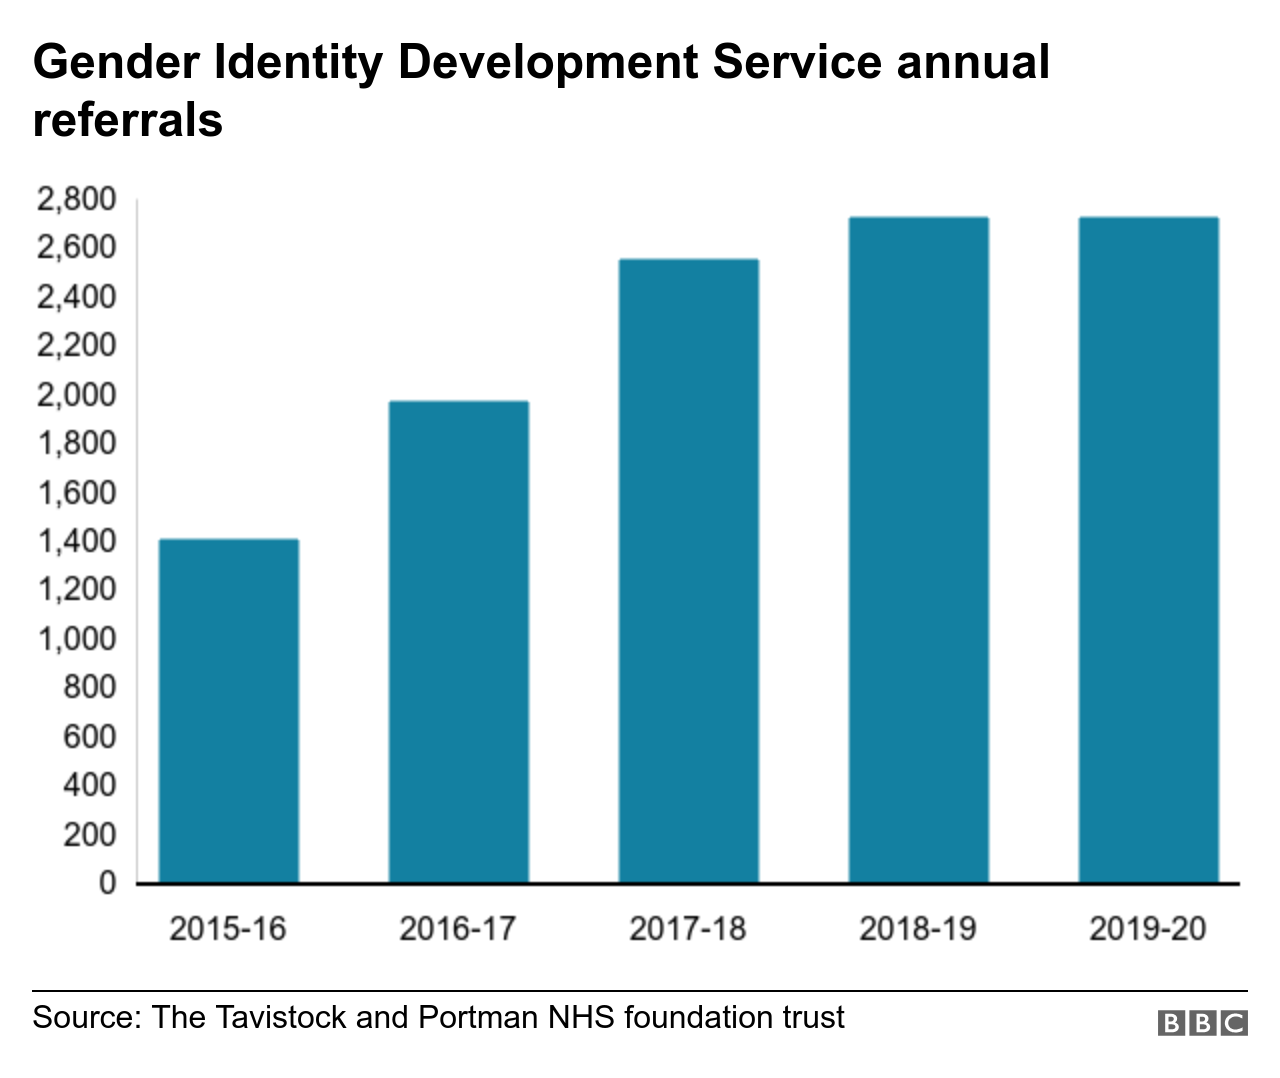 Chart showing annual referrals to GIDS